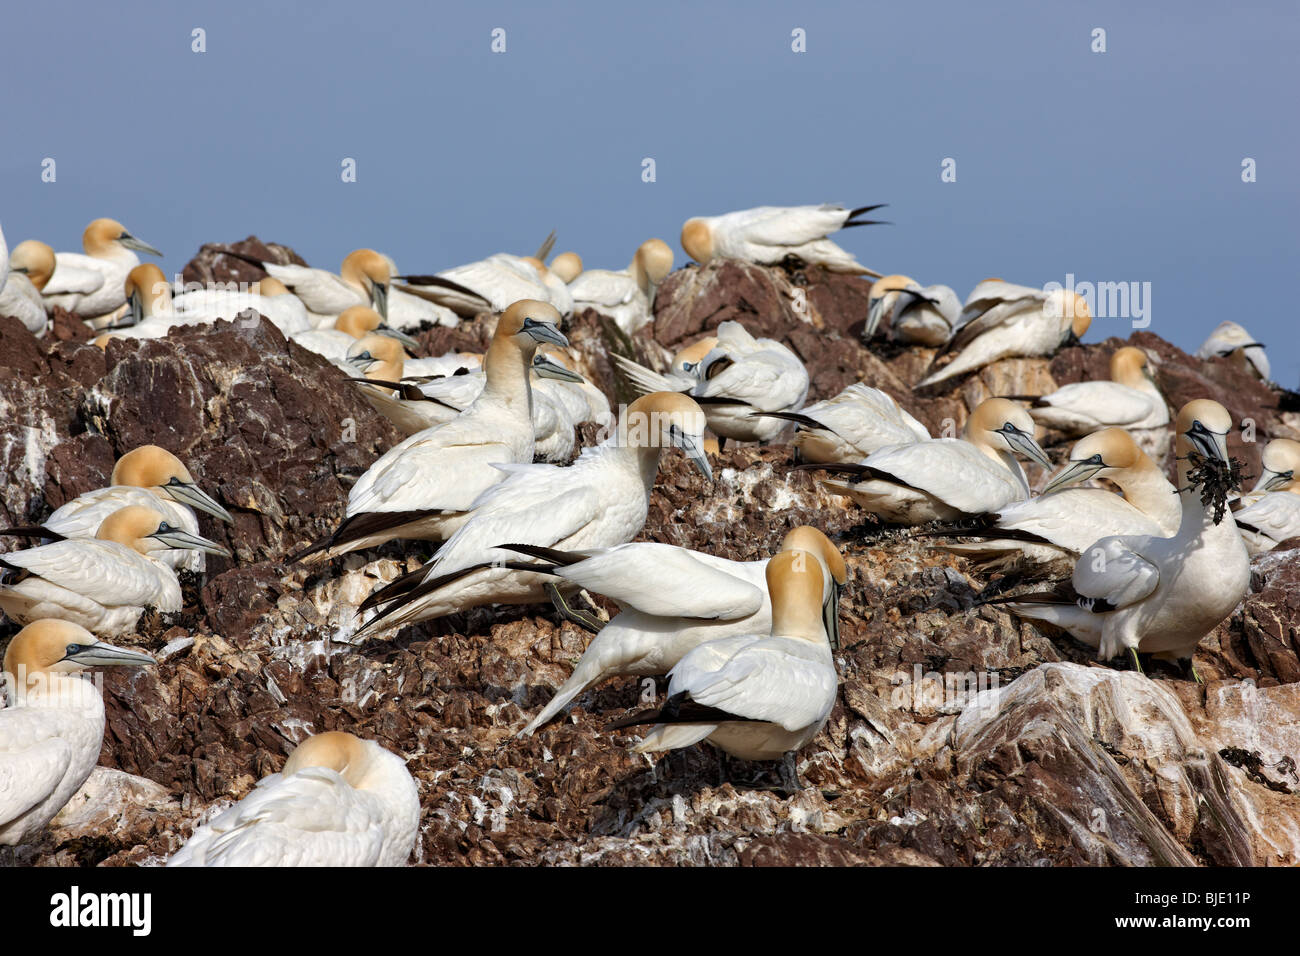 Gannets, Morus bassanus, colony and nests at Bass Rock, Scotland UK - Stock Image